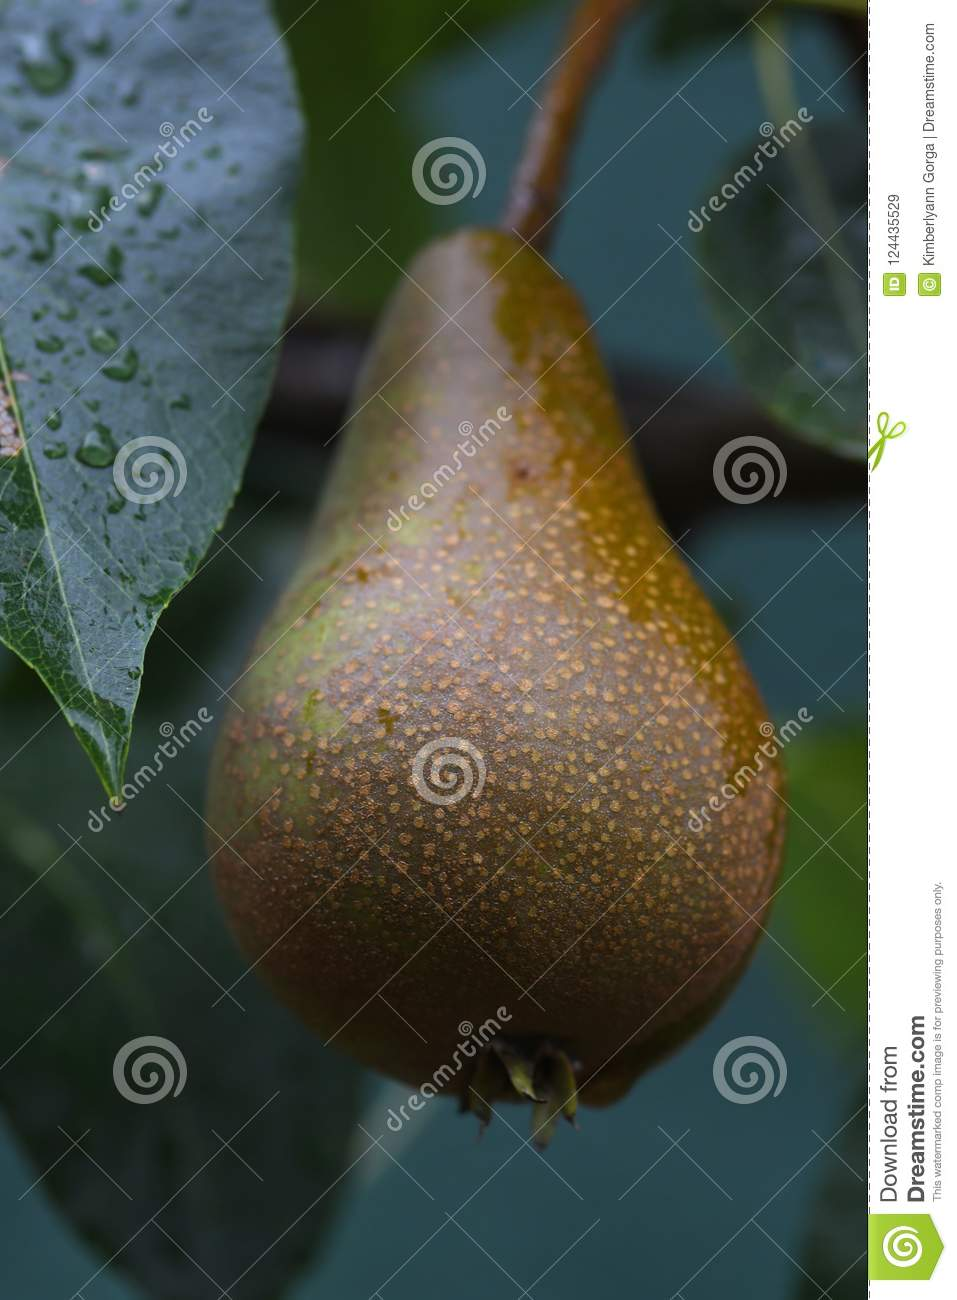 Download Macro Of A Brown And Green Pear Stock Image - Image of rain, pear: 124435529